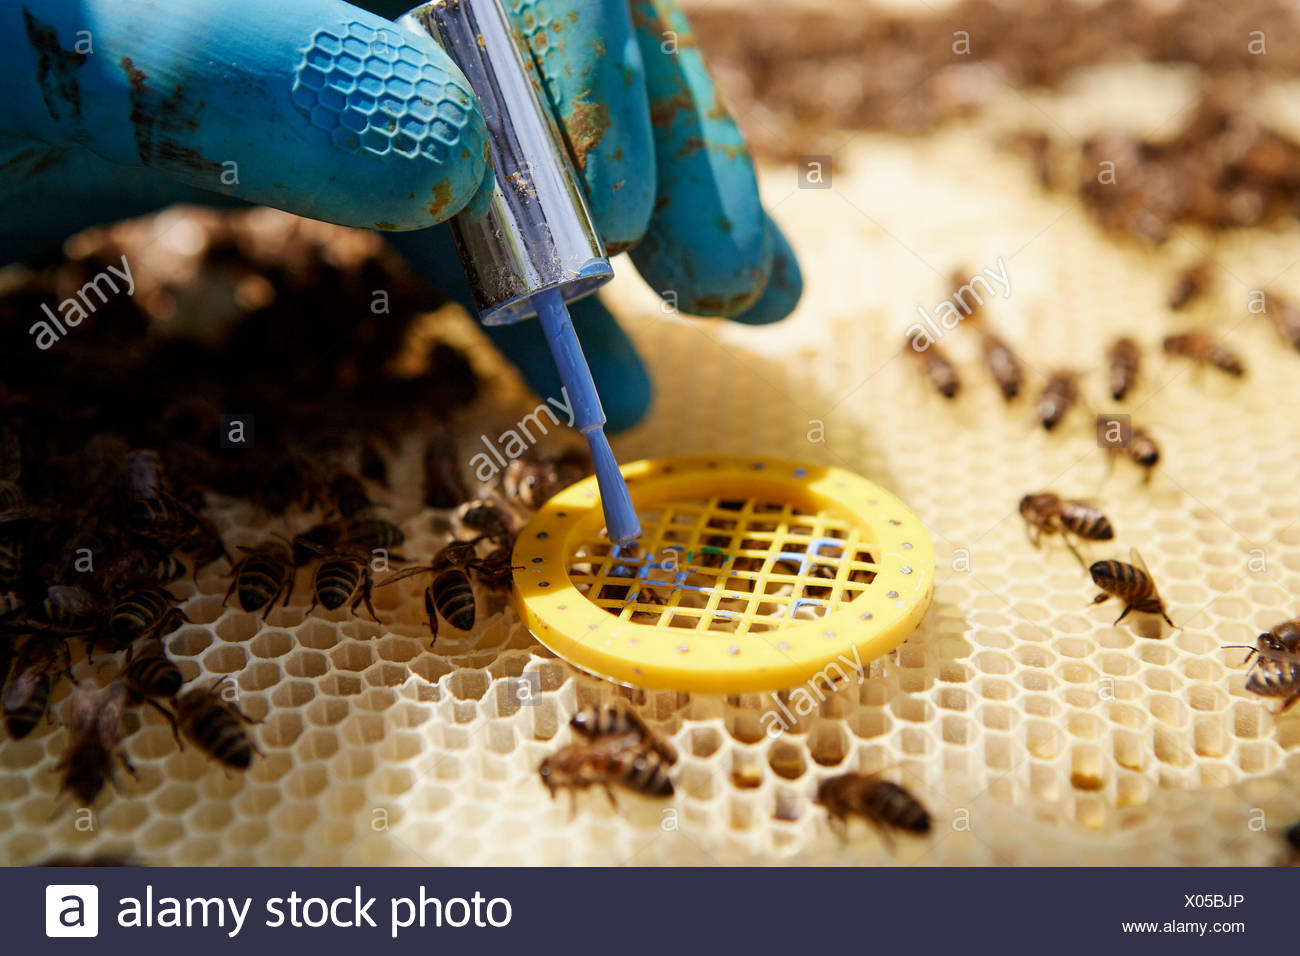 A beekeeper placing a queen cage on a super in a beehive. - Stock Image